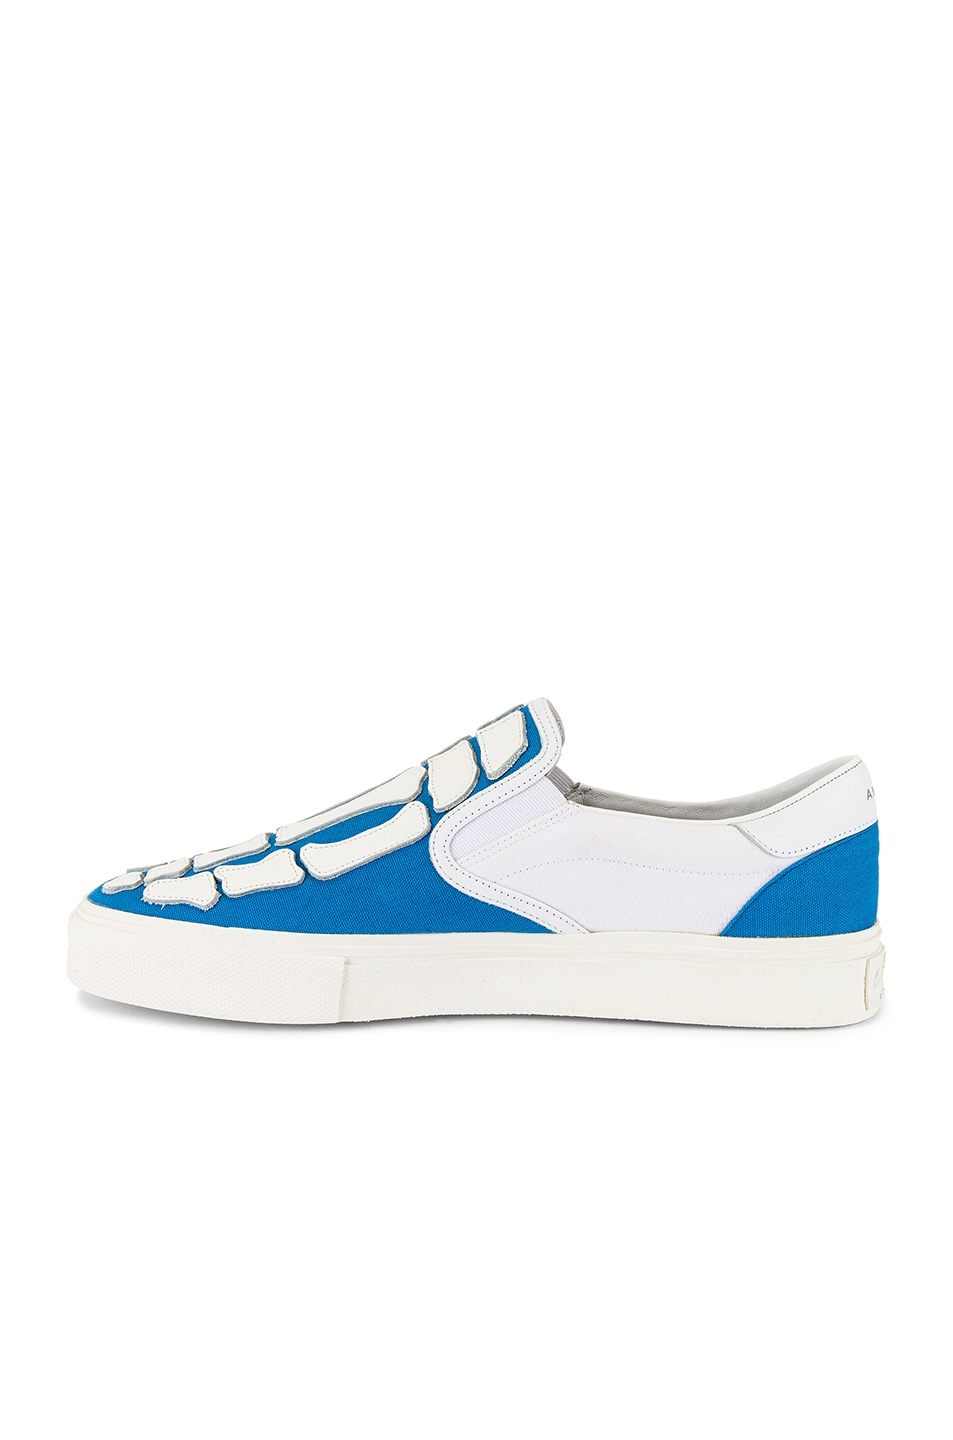 Image 5 of Amiri Skel Toe Slip On in Blue & White & White